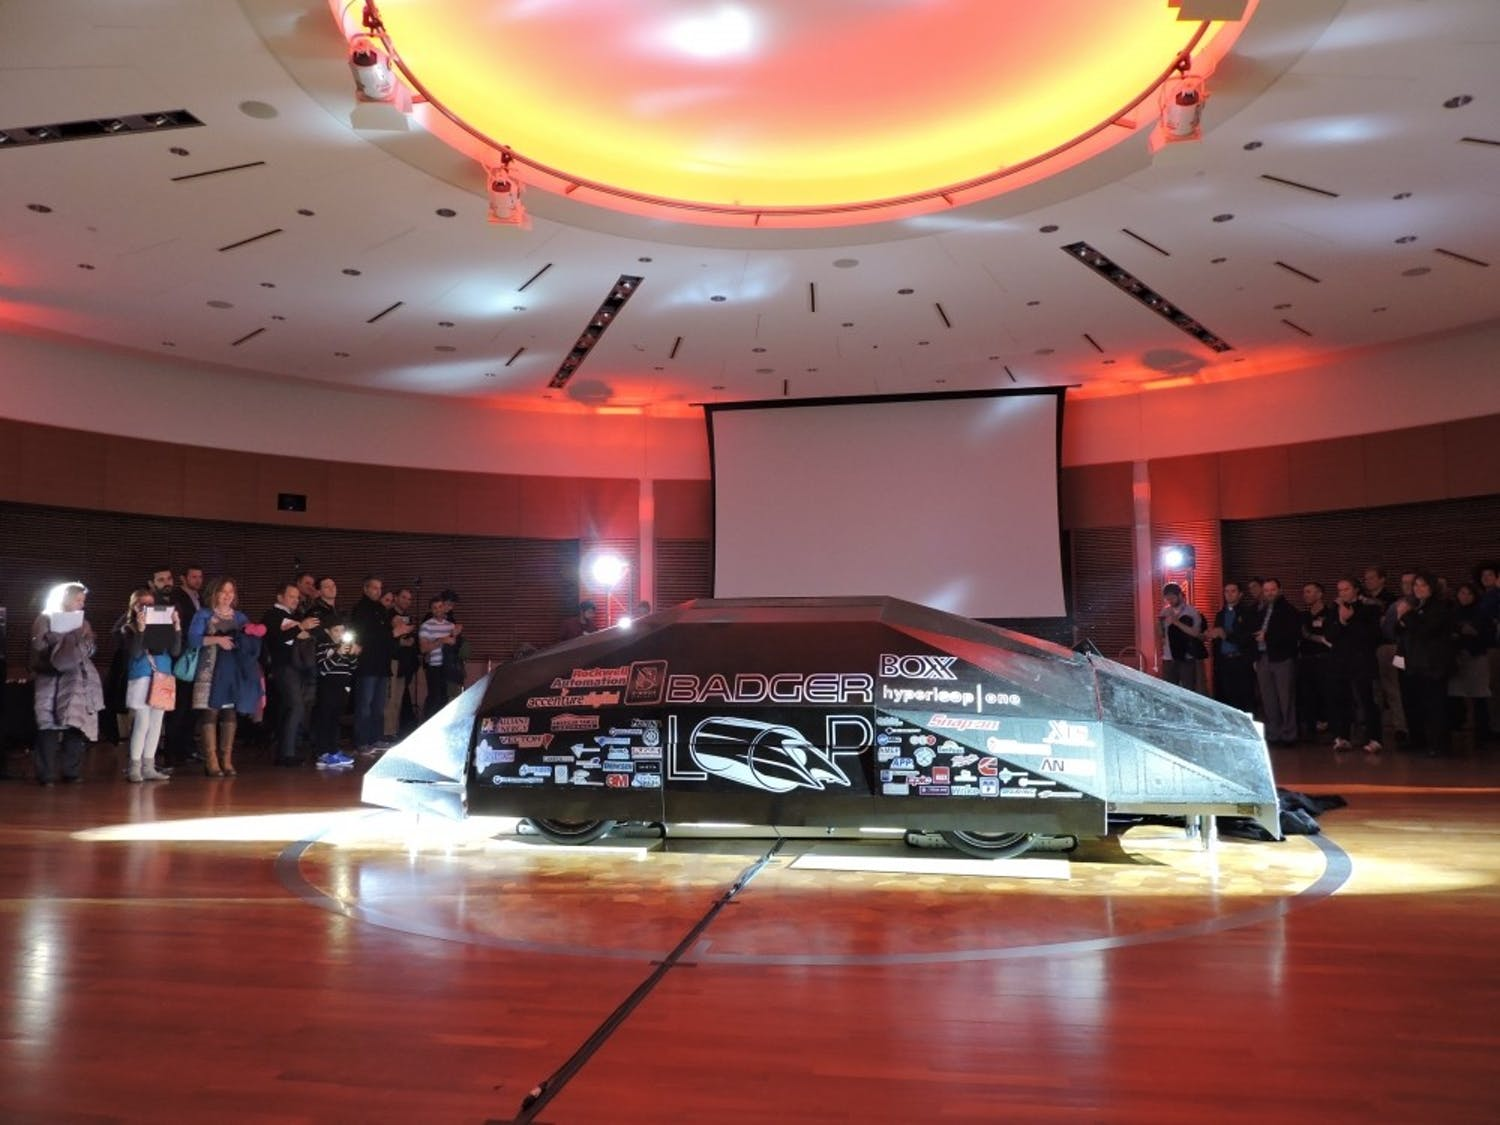 Badgerloop revealed their pod last December at a public event. The 15-foot, 2,100-pound pod did not take an attempt at the test track, but the team received an innovation award for their years' long work.